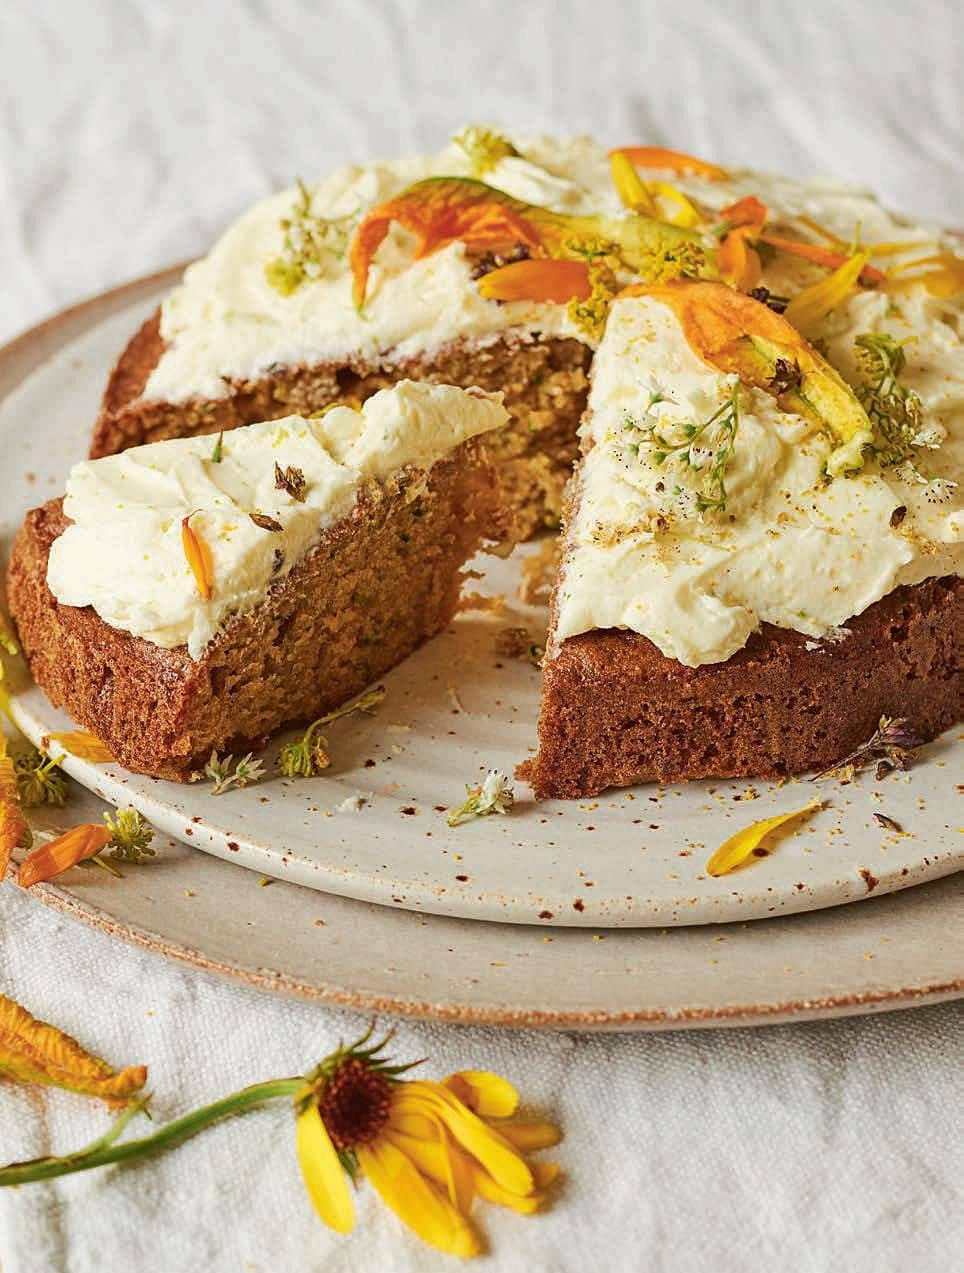 Courgette Cake with Lime Buttercream